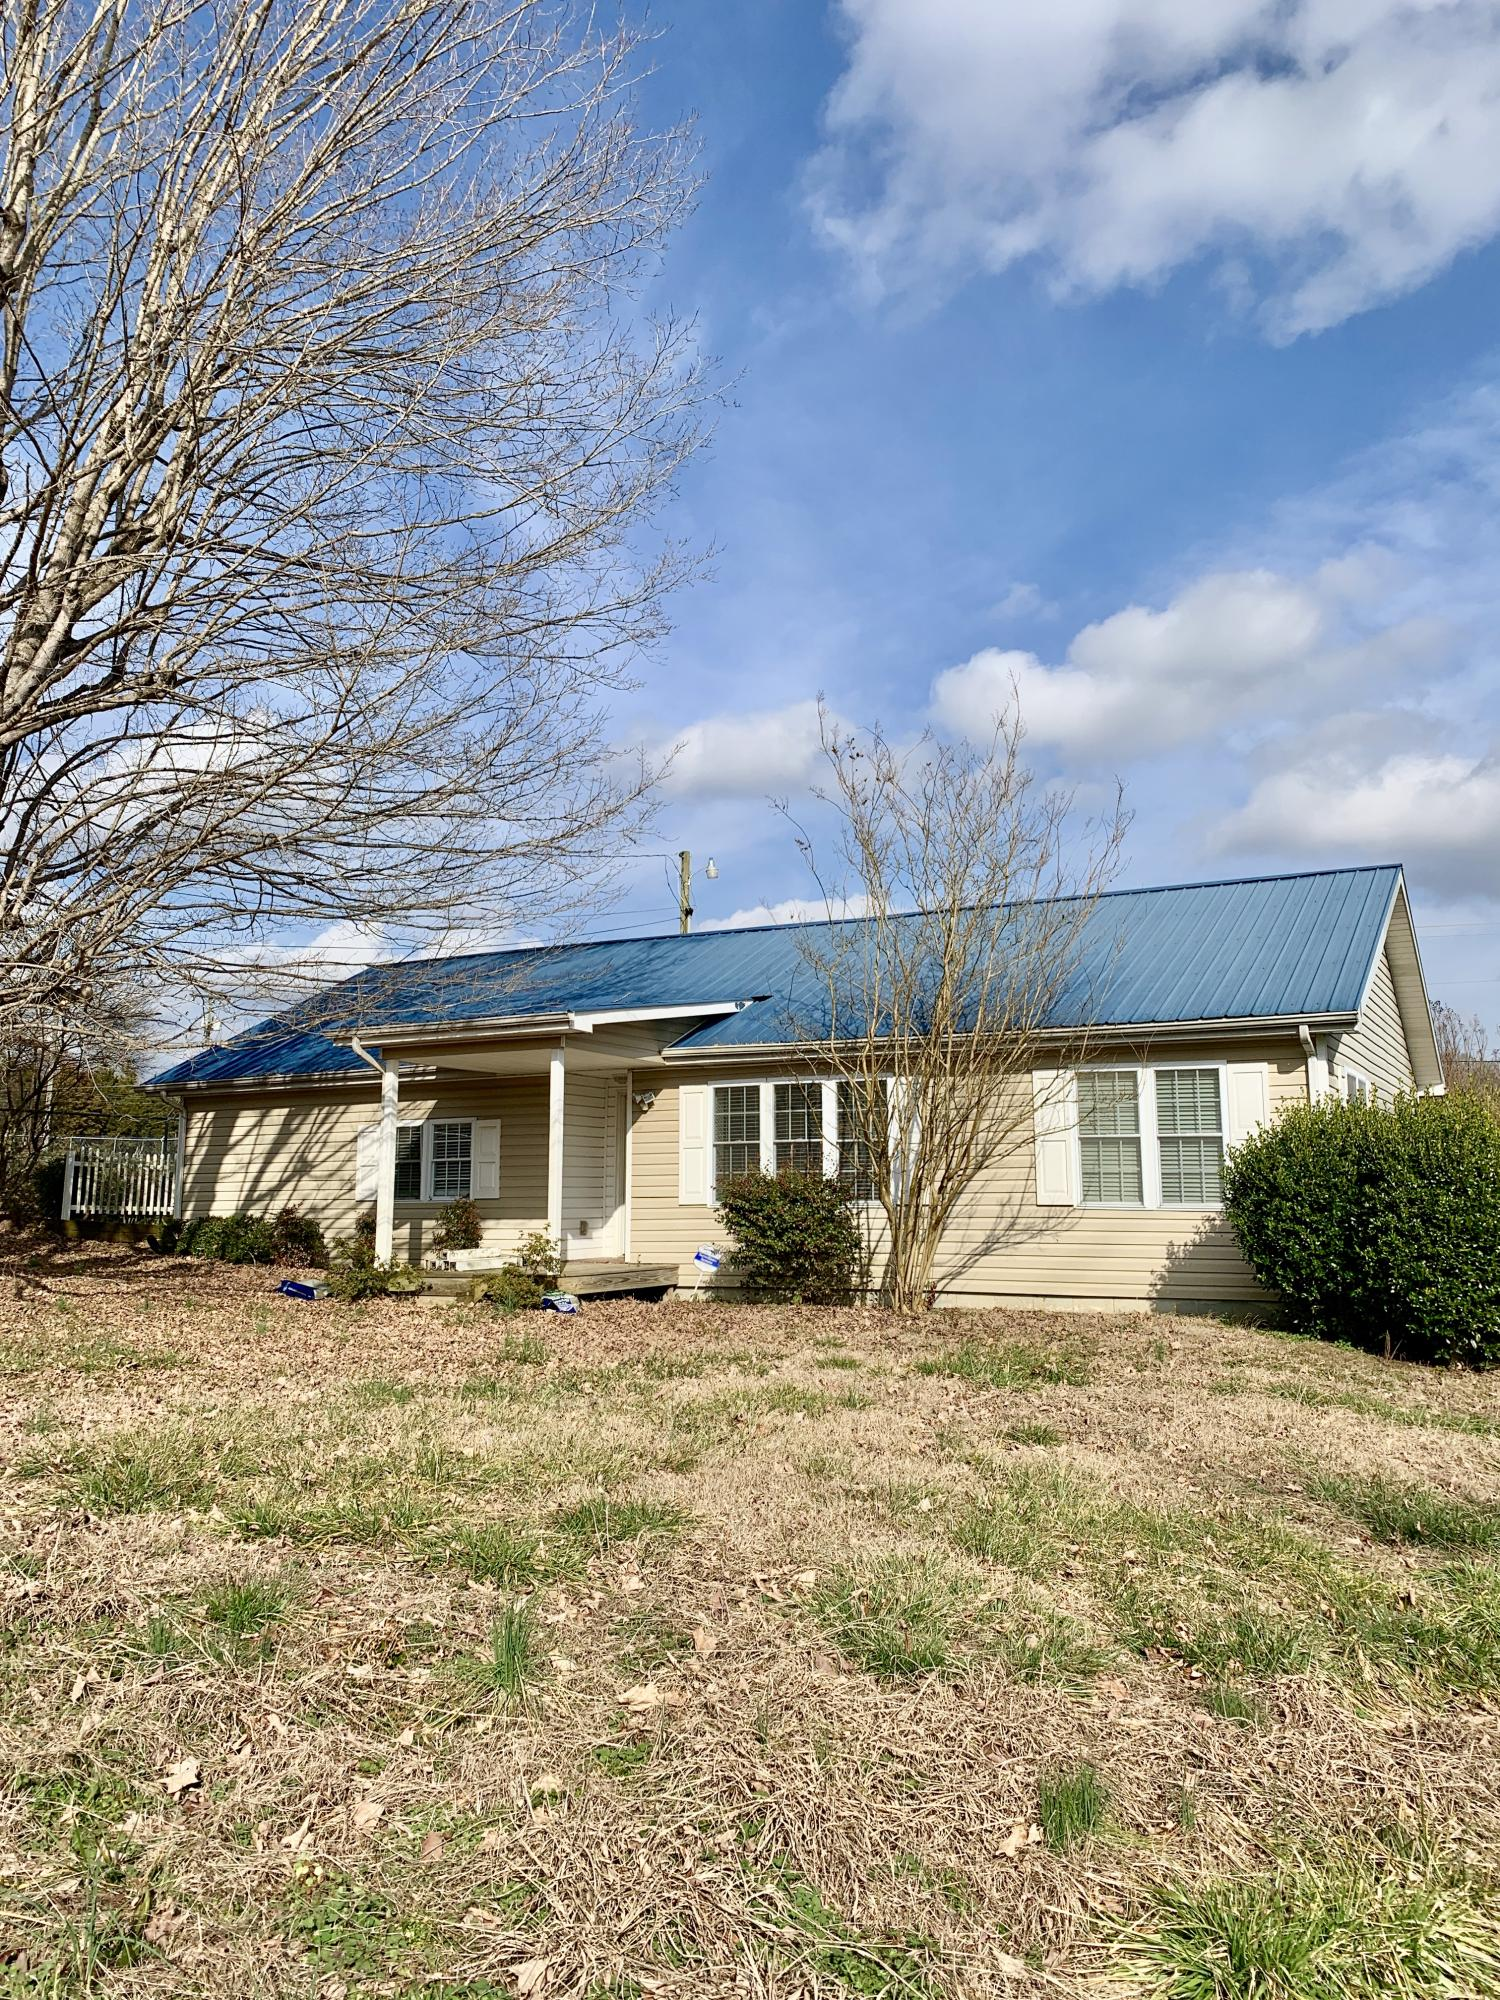 2105 Ingleside Ave, Athens, Tennessee 37303, ,Commercial,For Sale,Ingleside,1069059